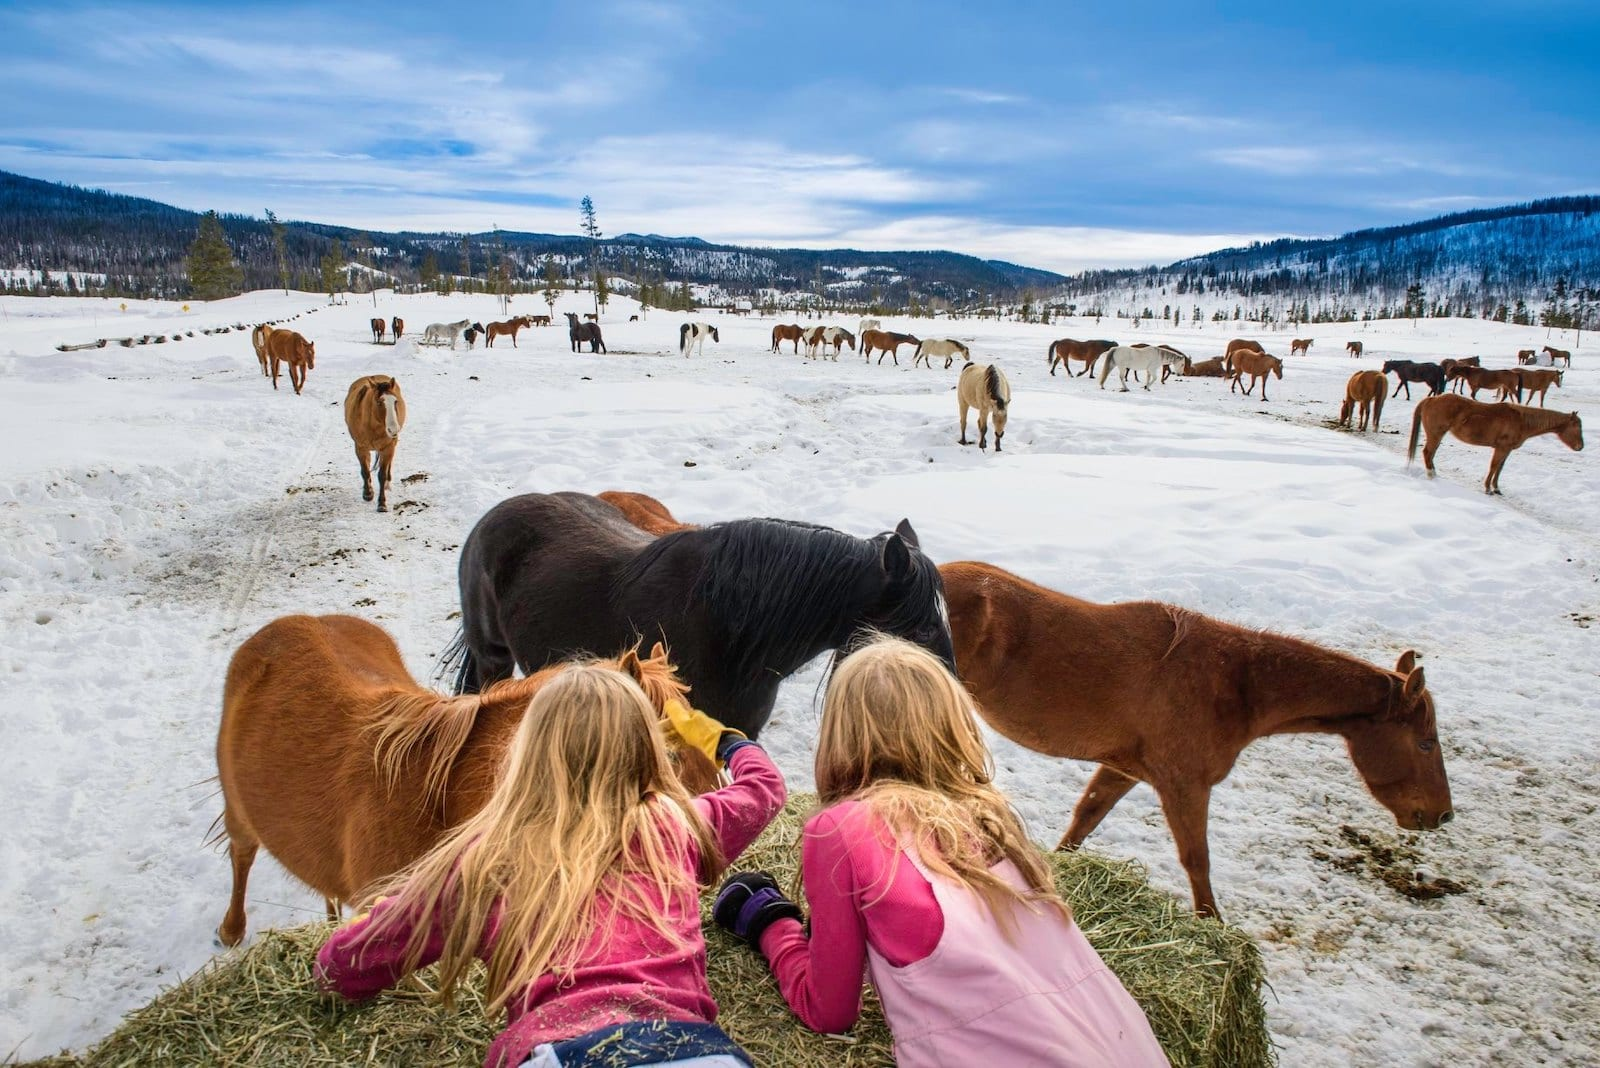 Image of two young girls petting the horses at Vista Verde Ranch, CO